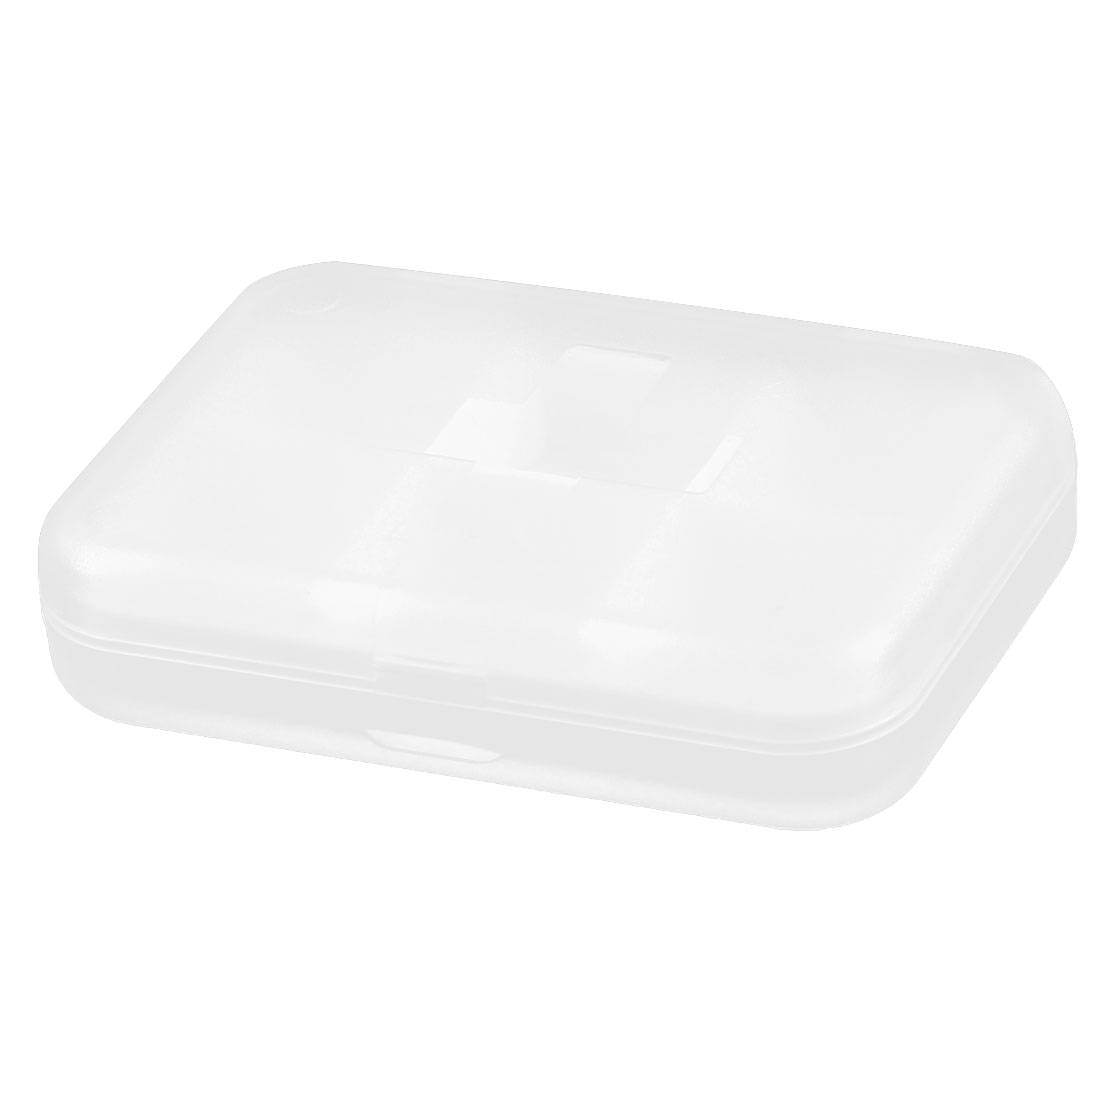 Household Travel Plastic Square Shaped 6 Compartments Capsule Pills Box Case White